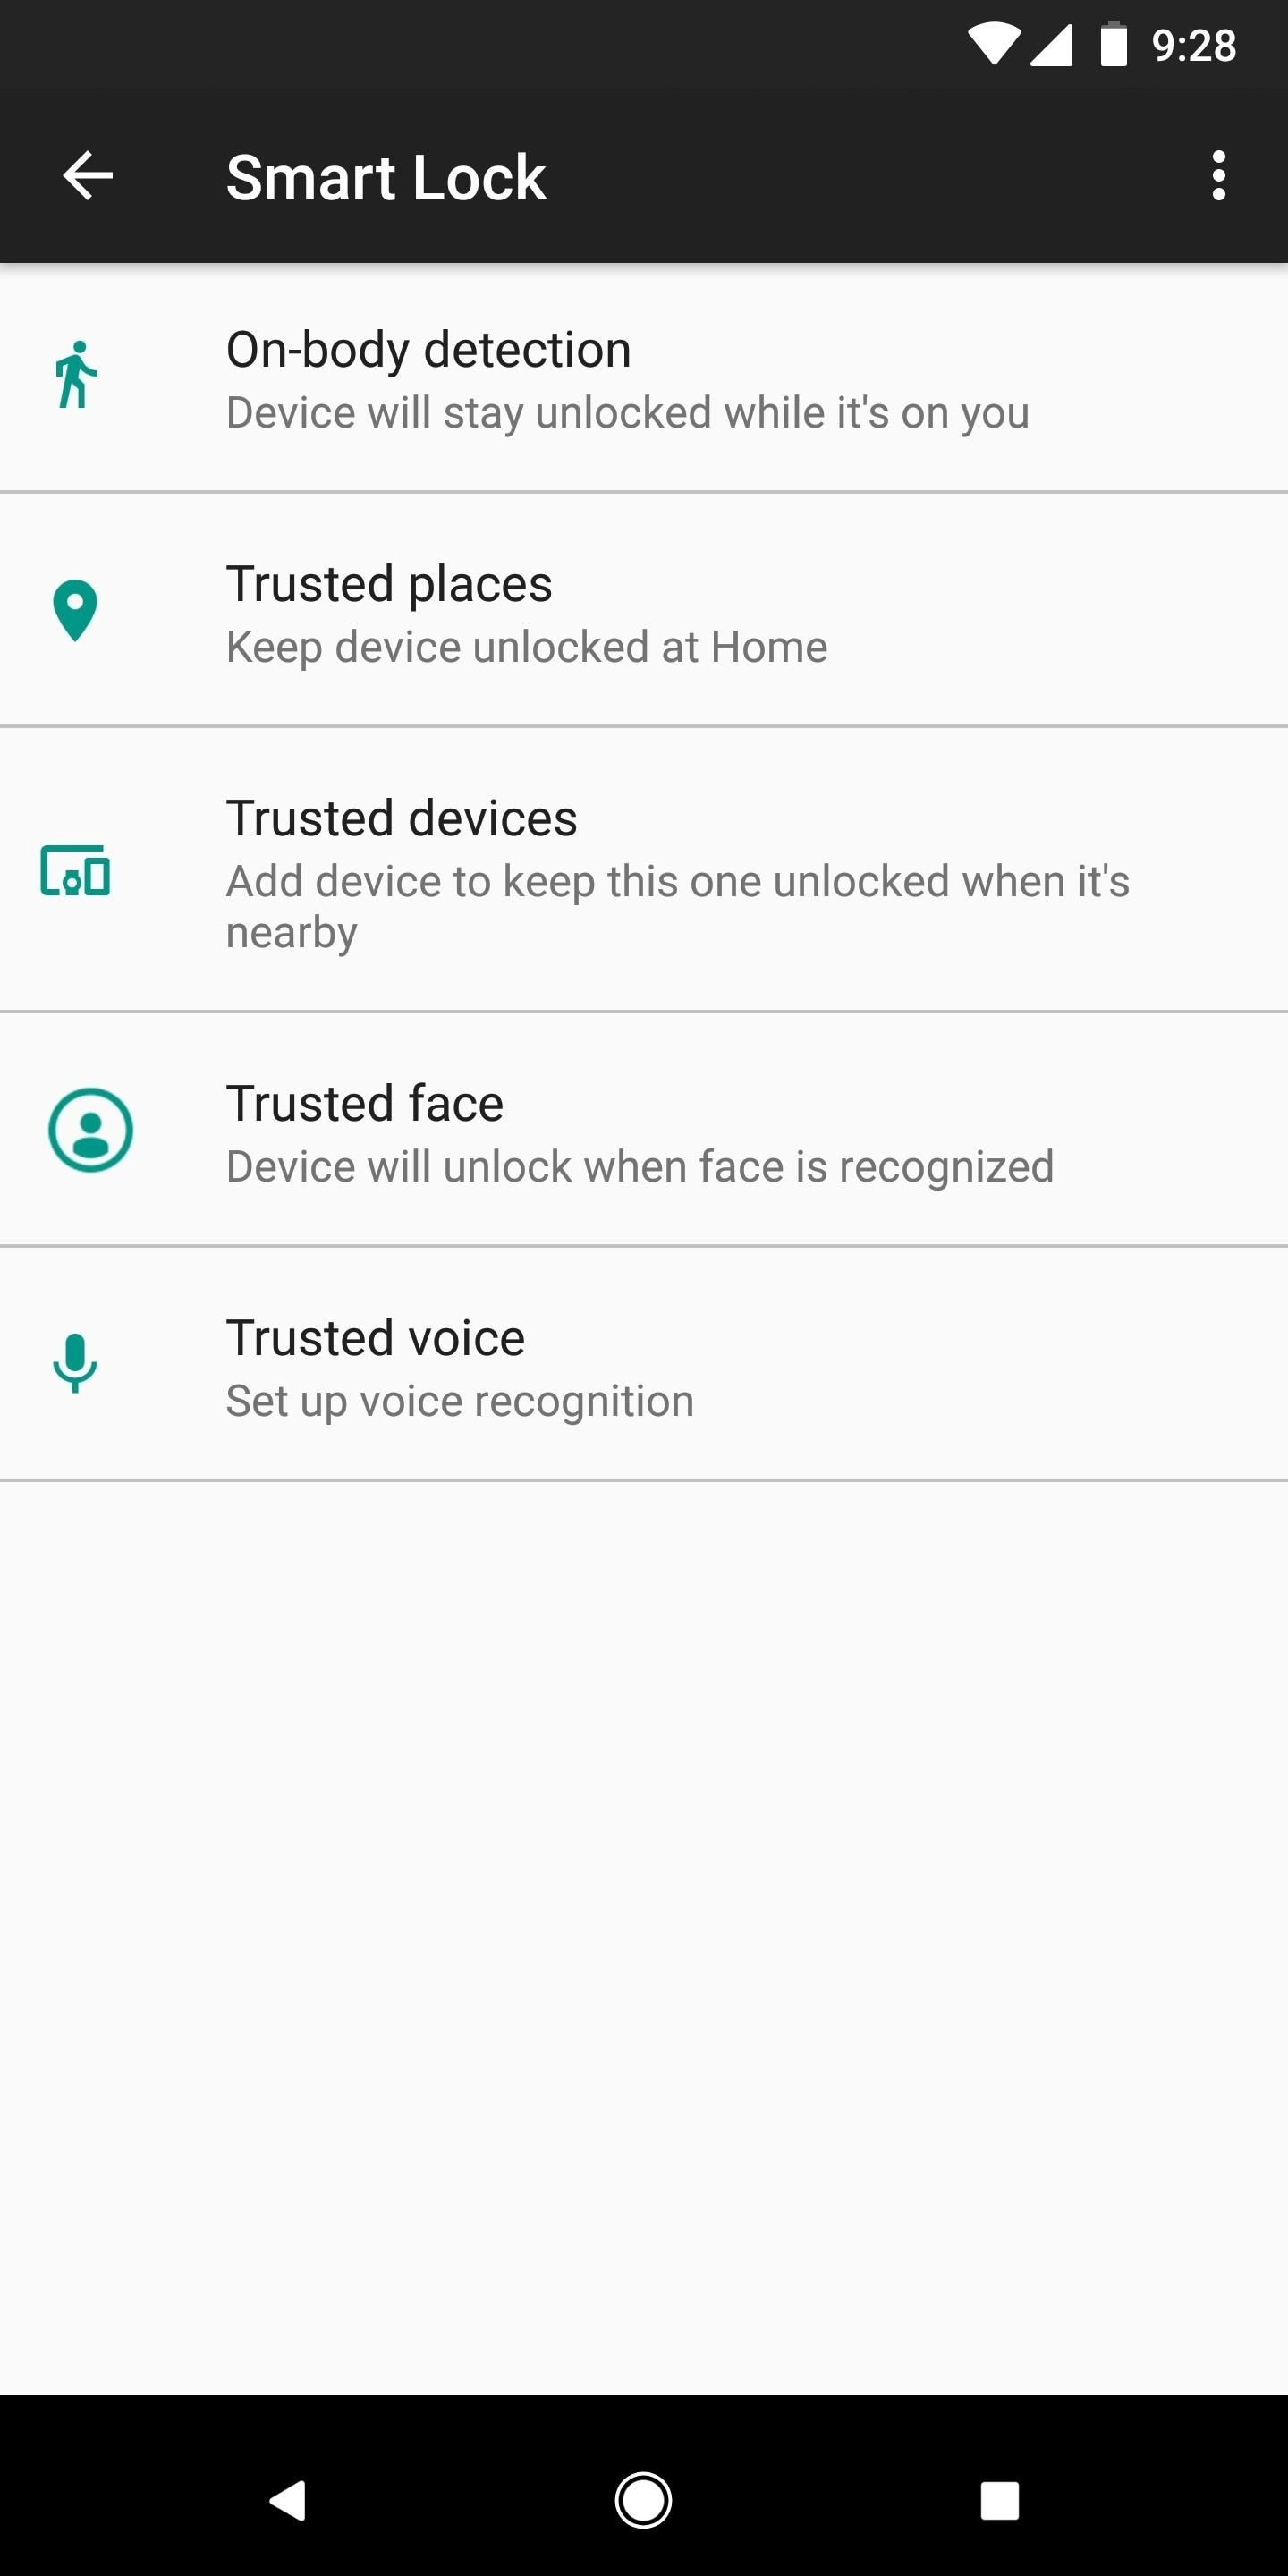 android-smart-lock-trusted-face